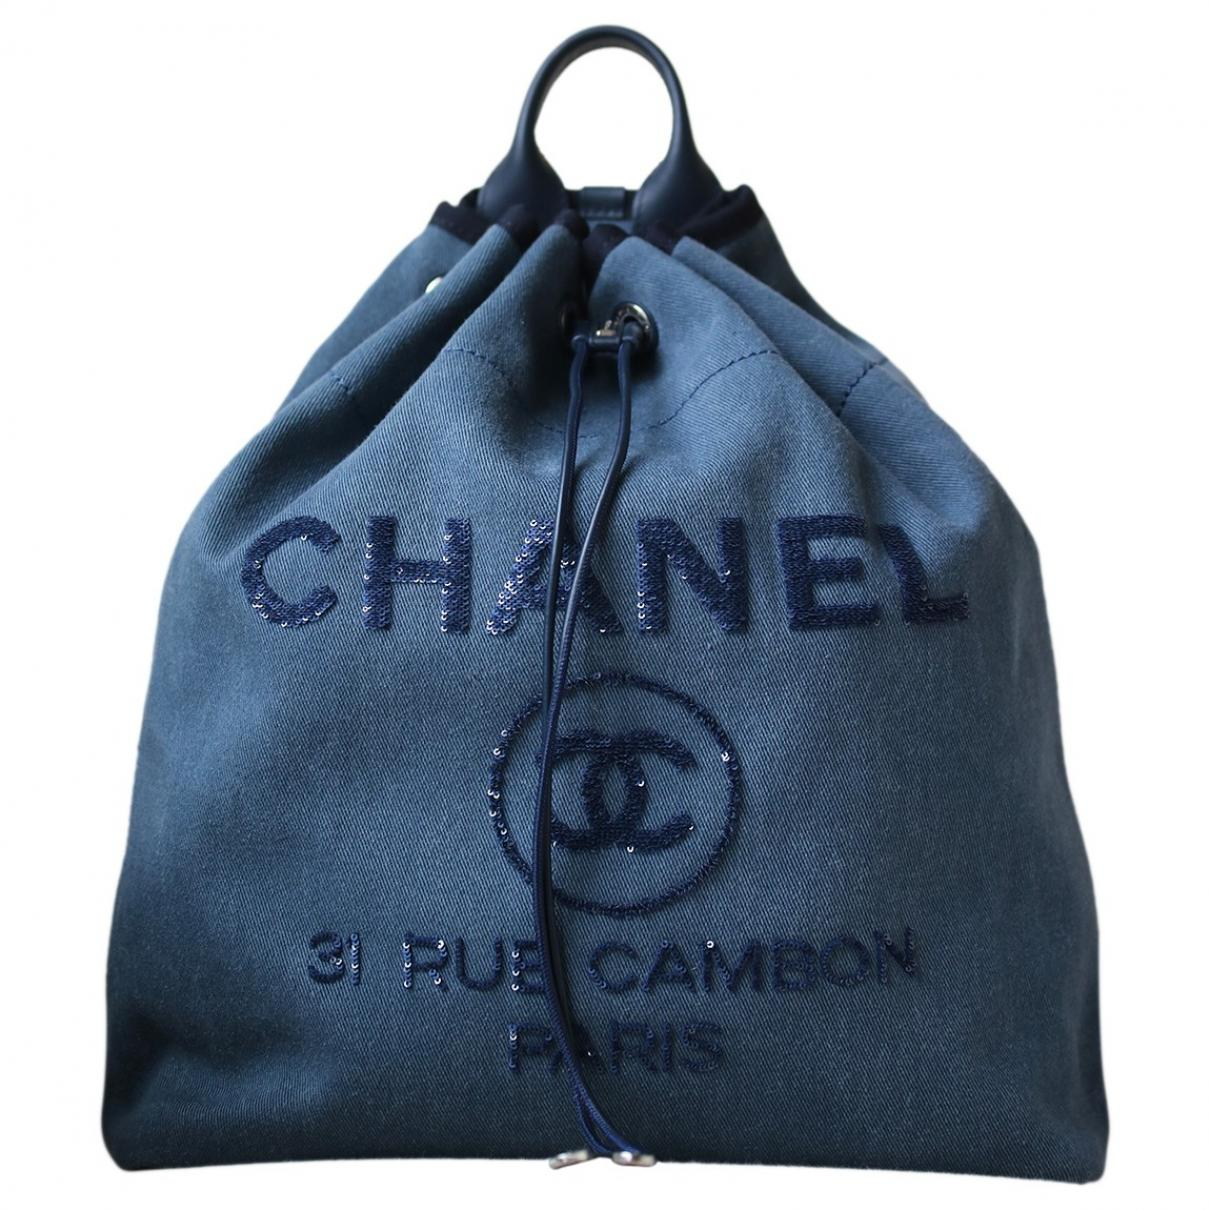 Chanel Deauville Cloth Backpack in Blue - Lyst d7d1c3654c3b0